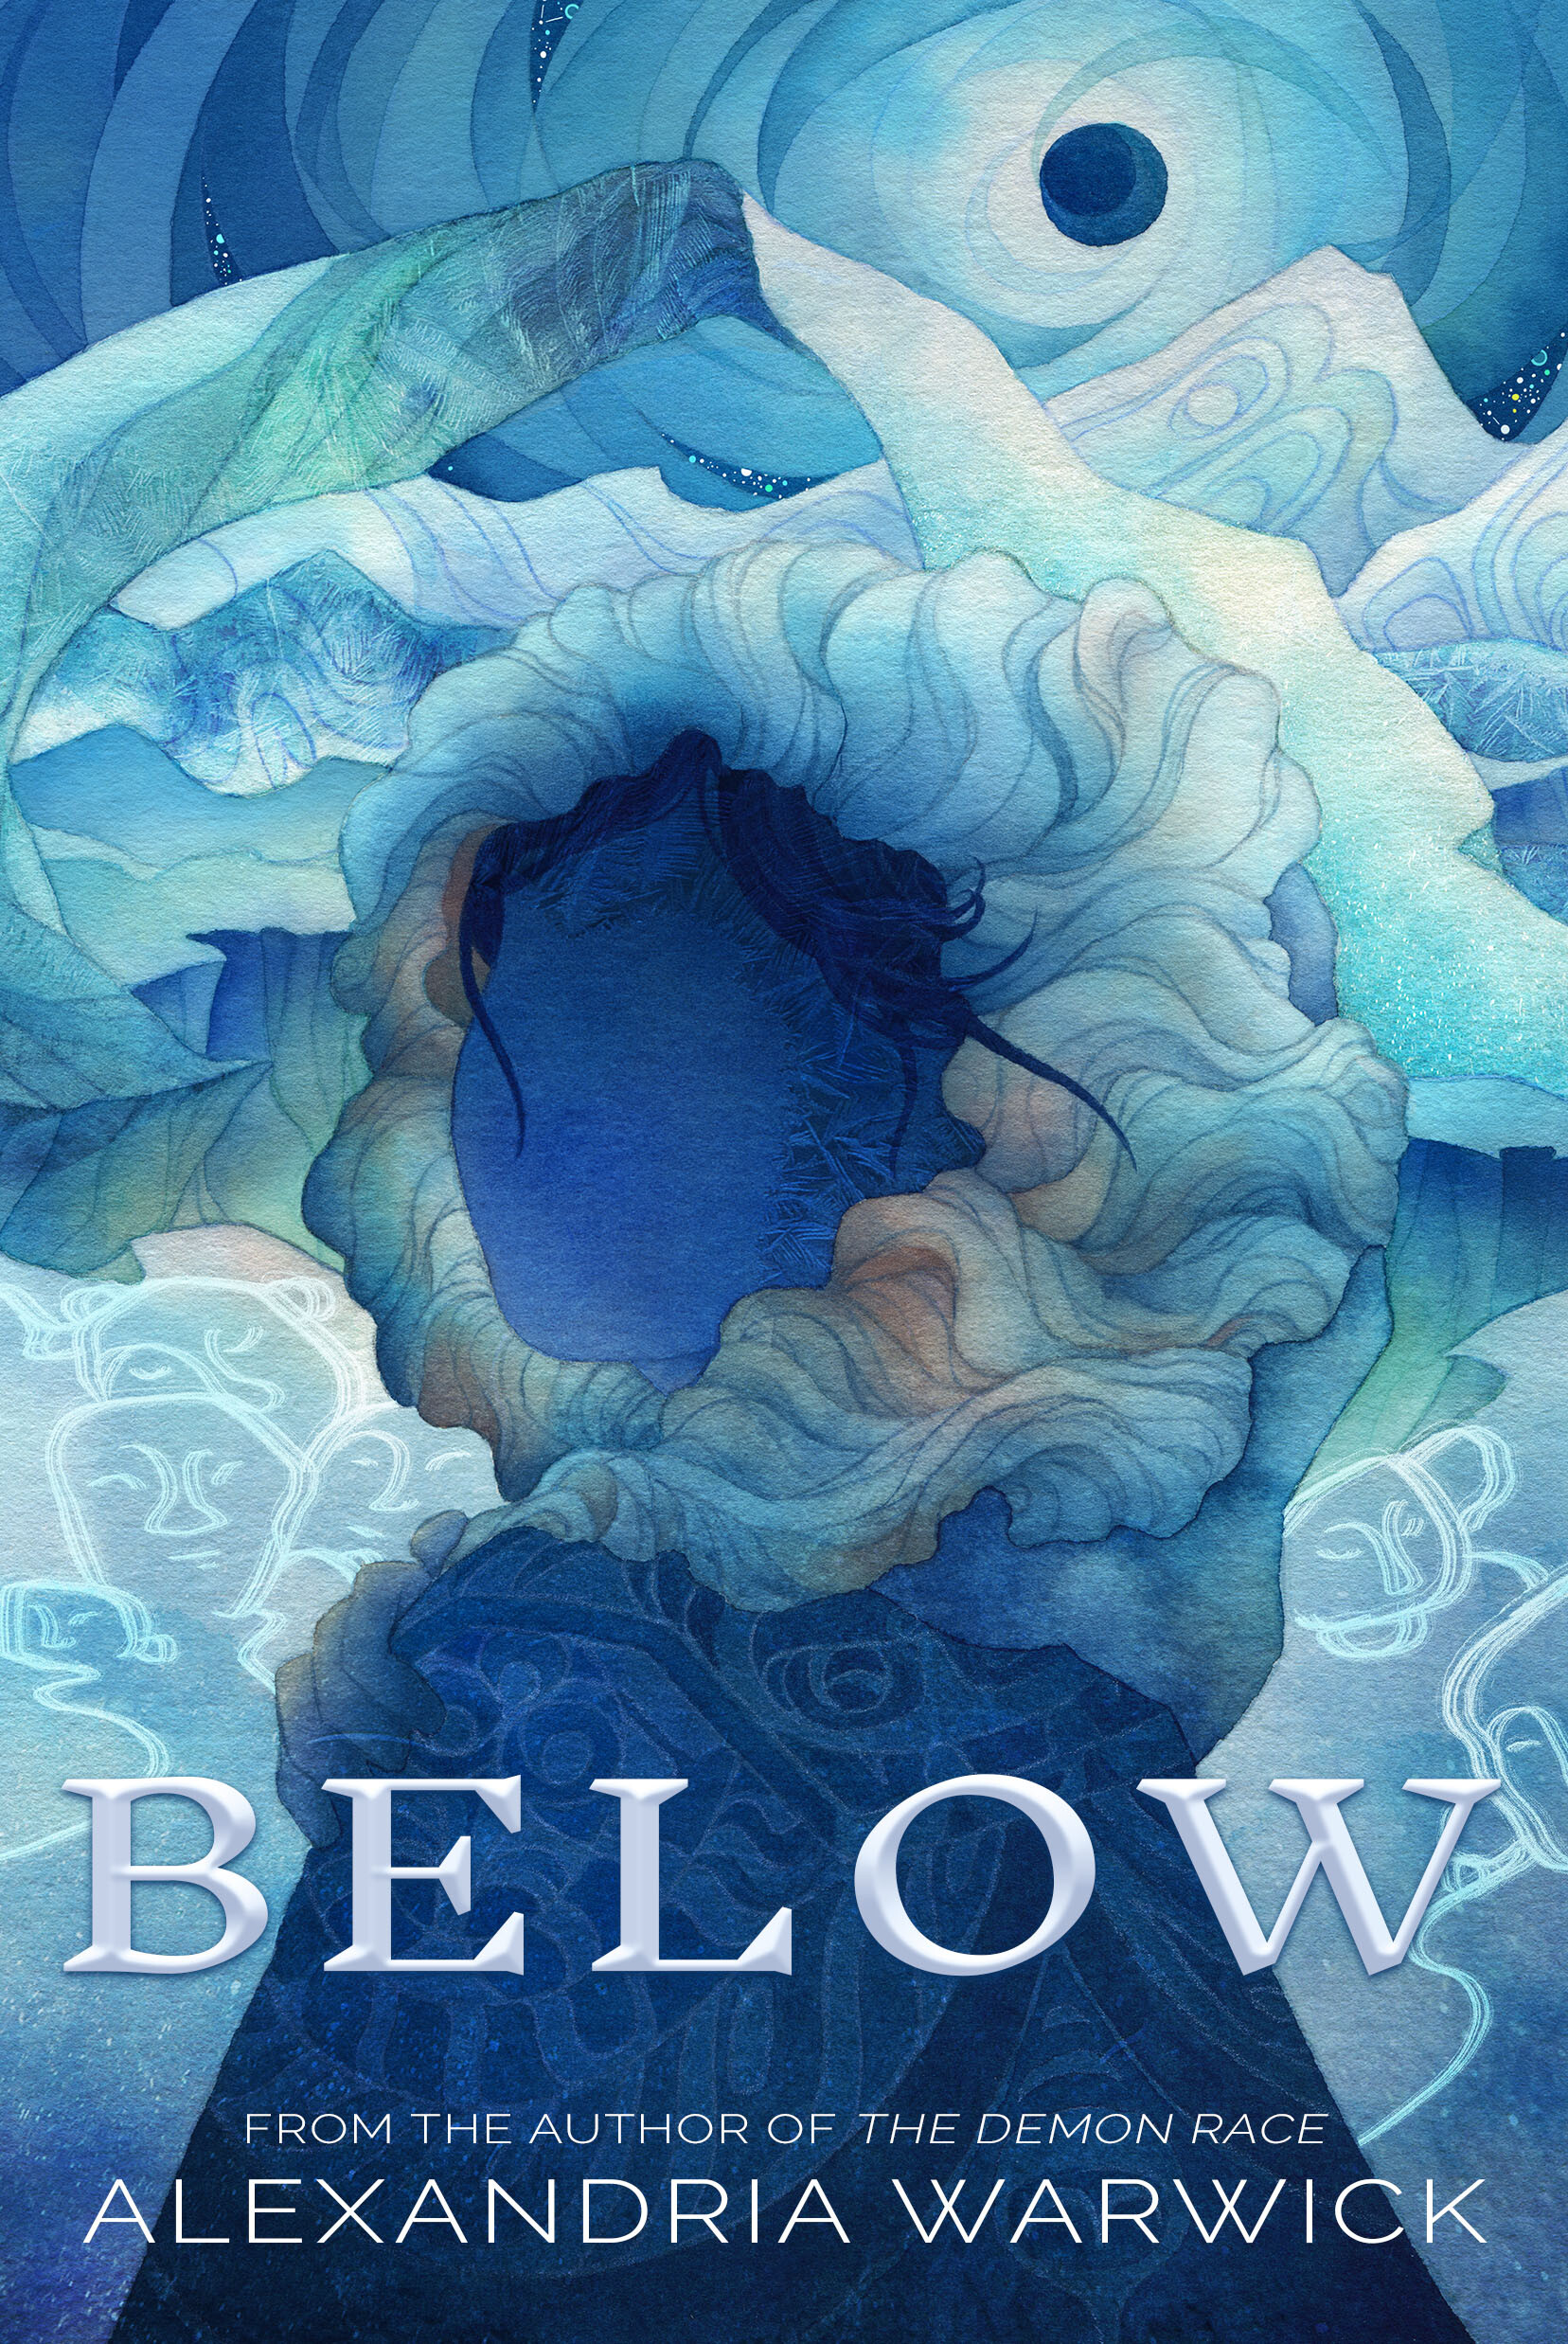 Image result for below alexandria warwick book cover